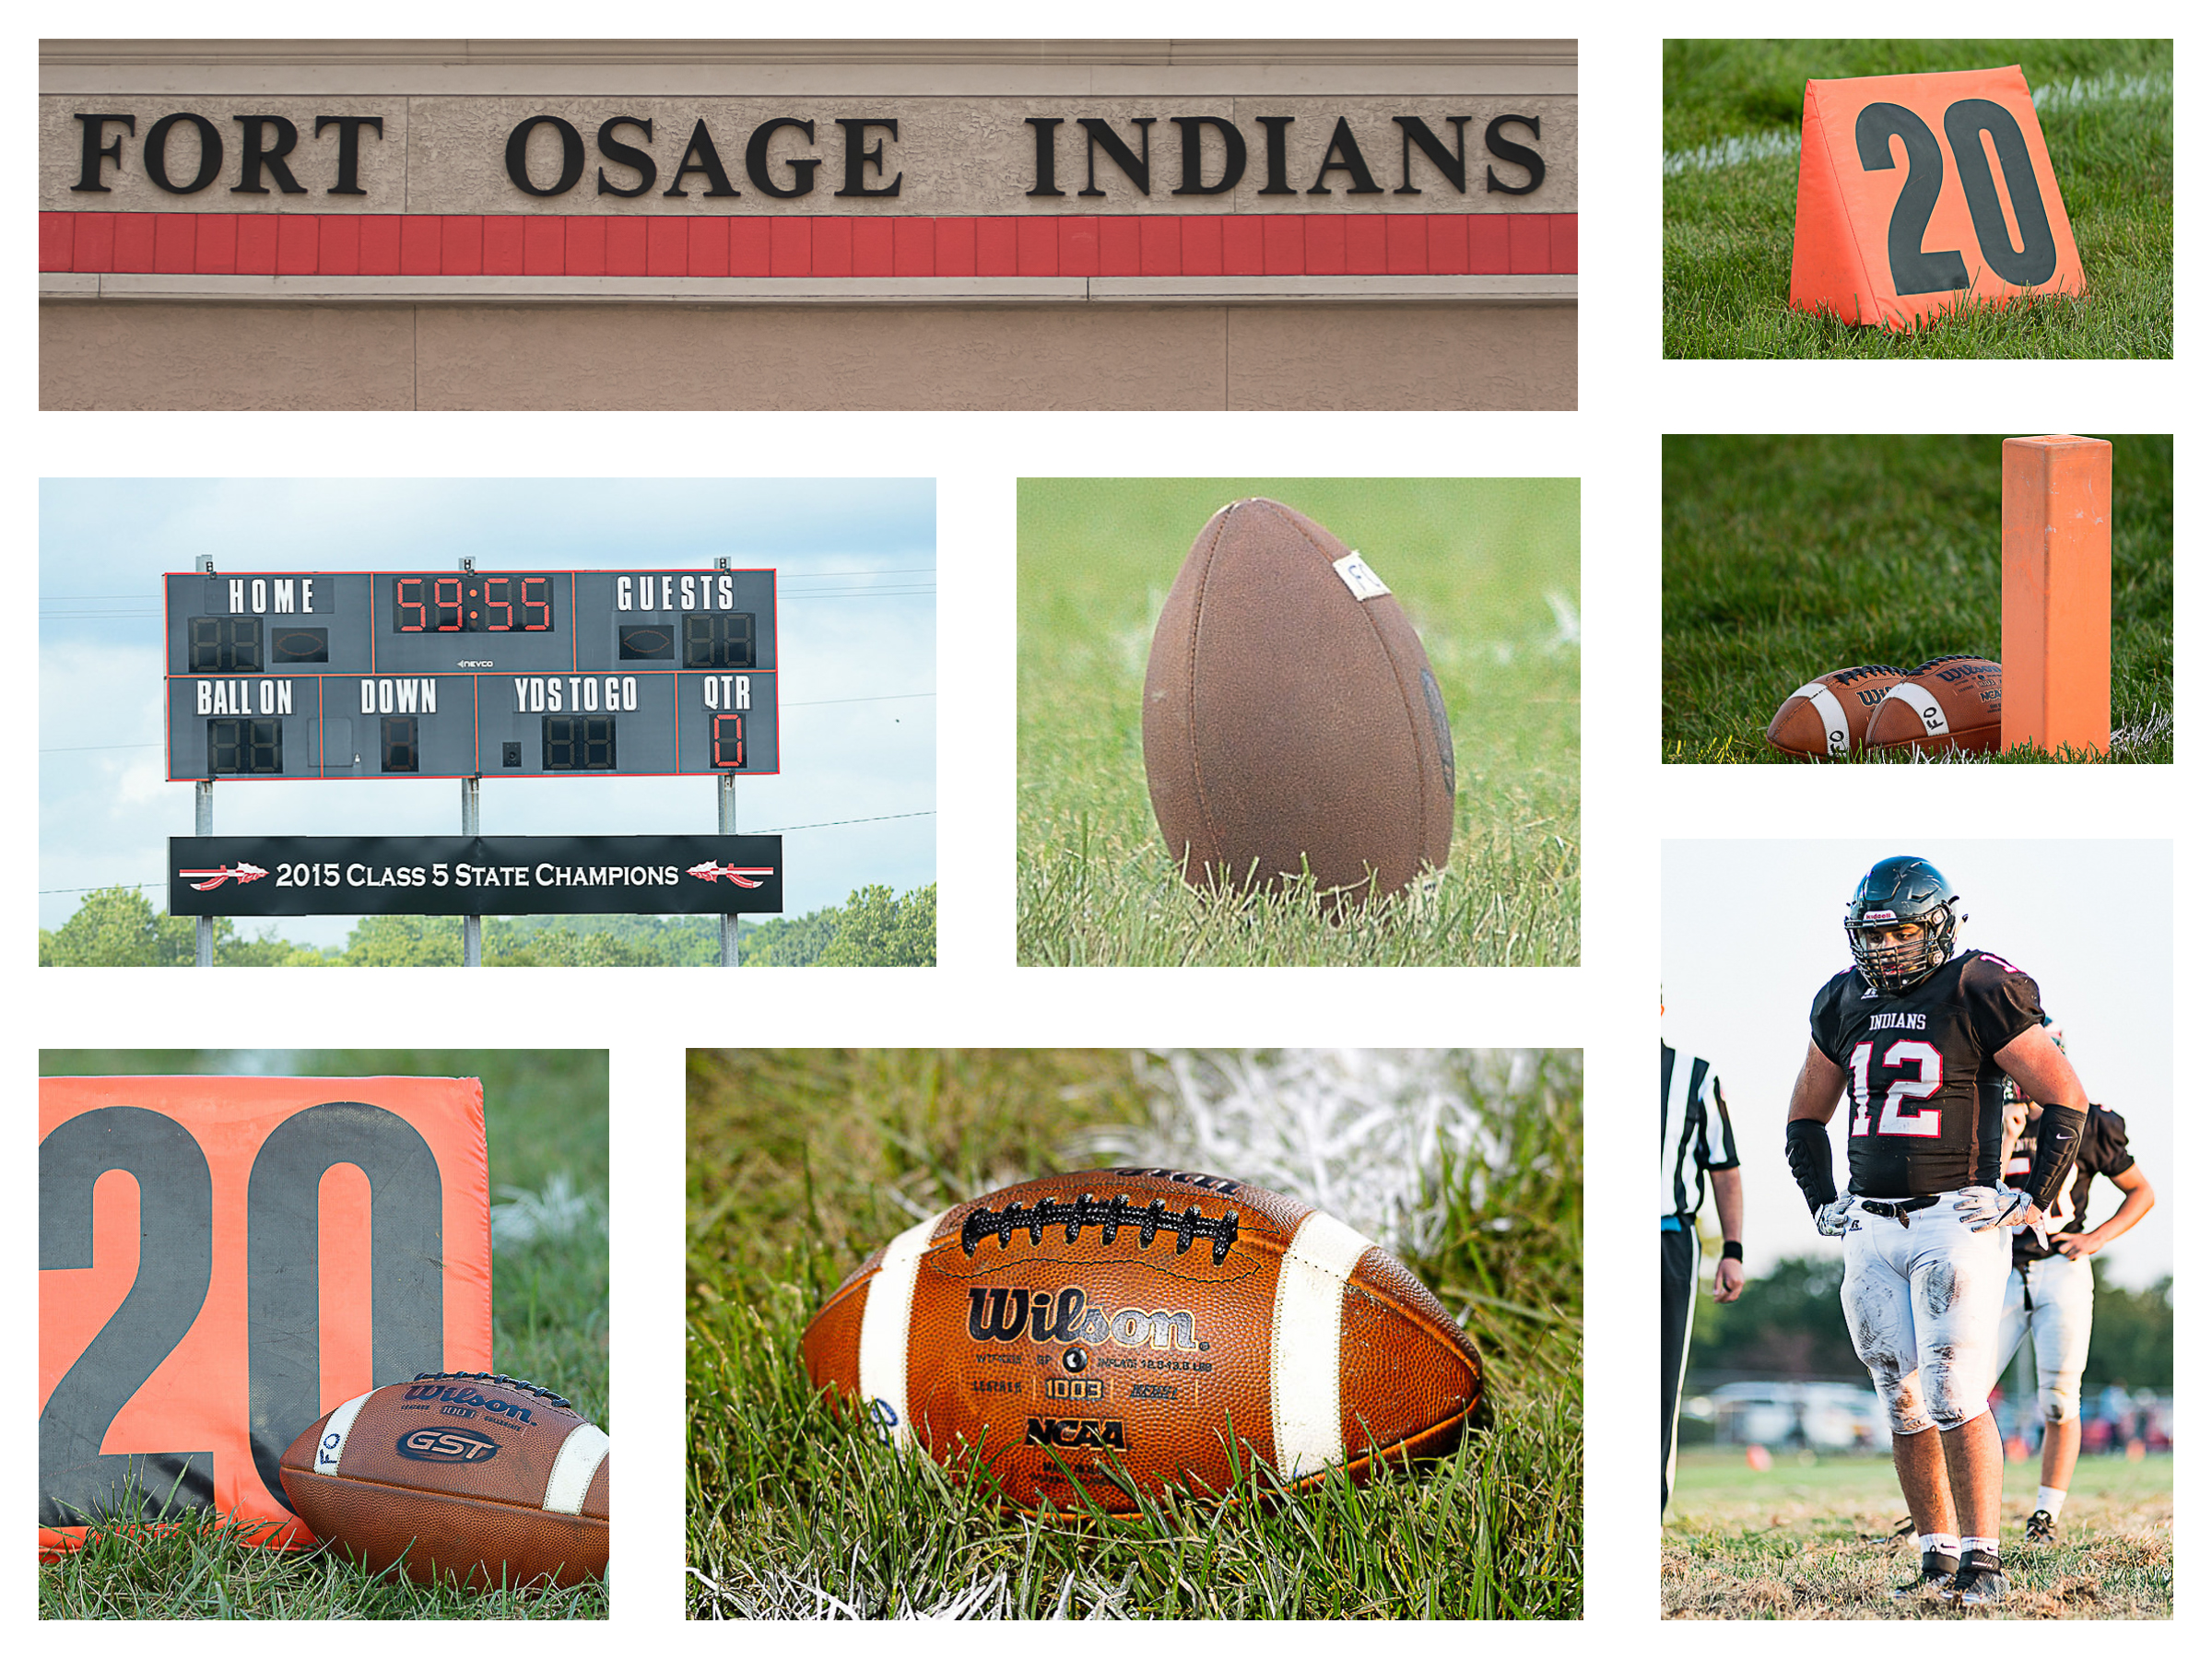 "Last year, voters in the Fort Osage district approved a bond for improvements to the district facilities. One of the improvements will be a new football/soccer/track stadium. It will include a new 8 lane track, new bleachers and press box, and new field turf. Fort Osage is the last school in the area that played on grass. It was a unique feature, and not being able to see a game on real grass will be missed. This stadium complex, and grass field have been part of the high school since the beginning. The images above are here in remembrance, and so we can show the kids of the future, that ""Yes, Virginia, football did use to be played on grass."""